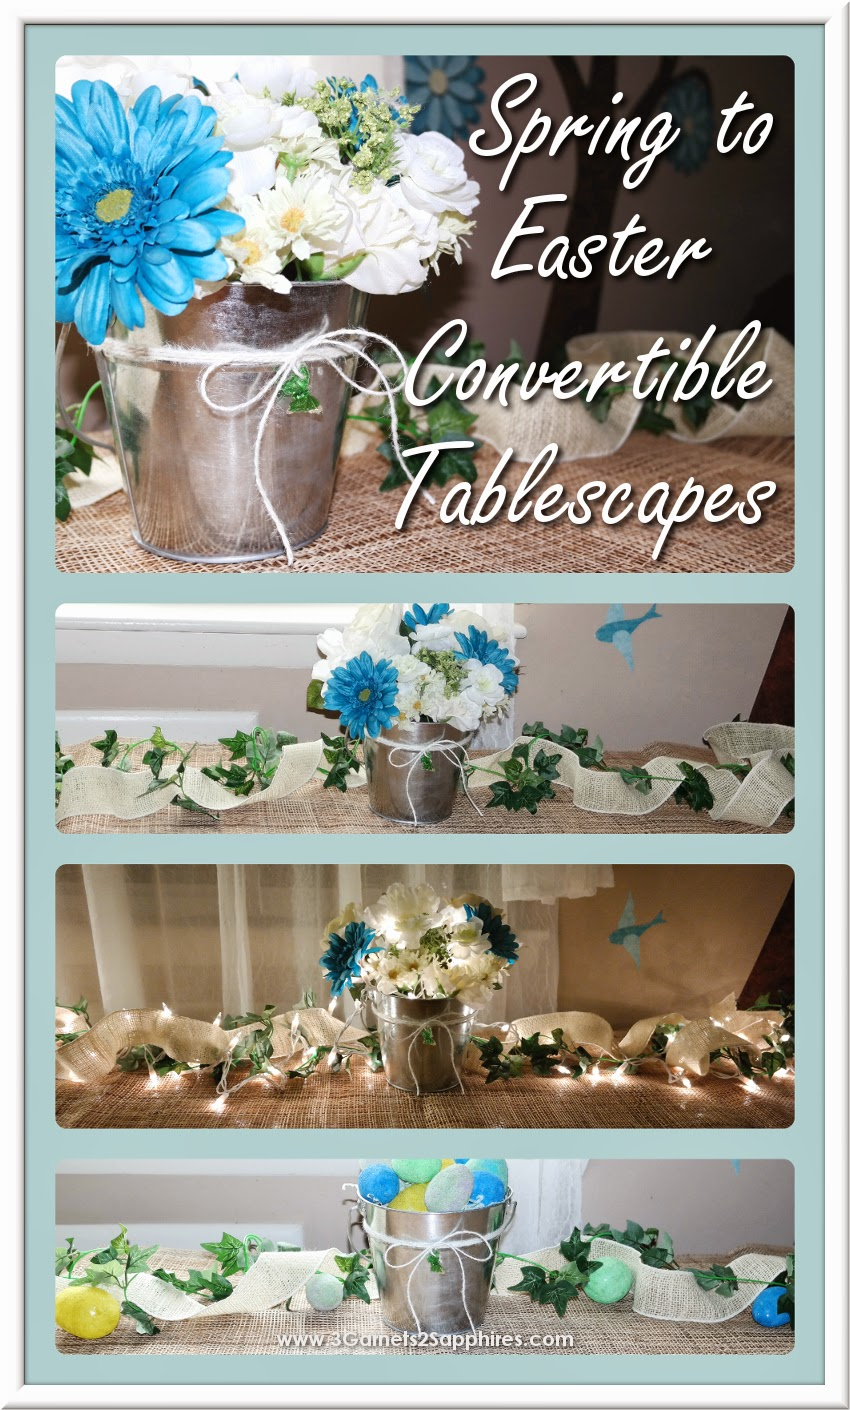 Easy Convertible Springtime to Easter-Themed Tablescape #SpringCrafts #EasterCrafts